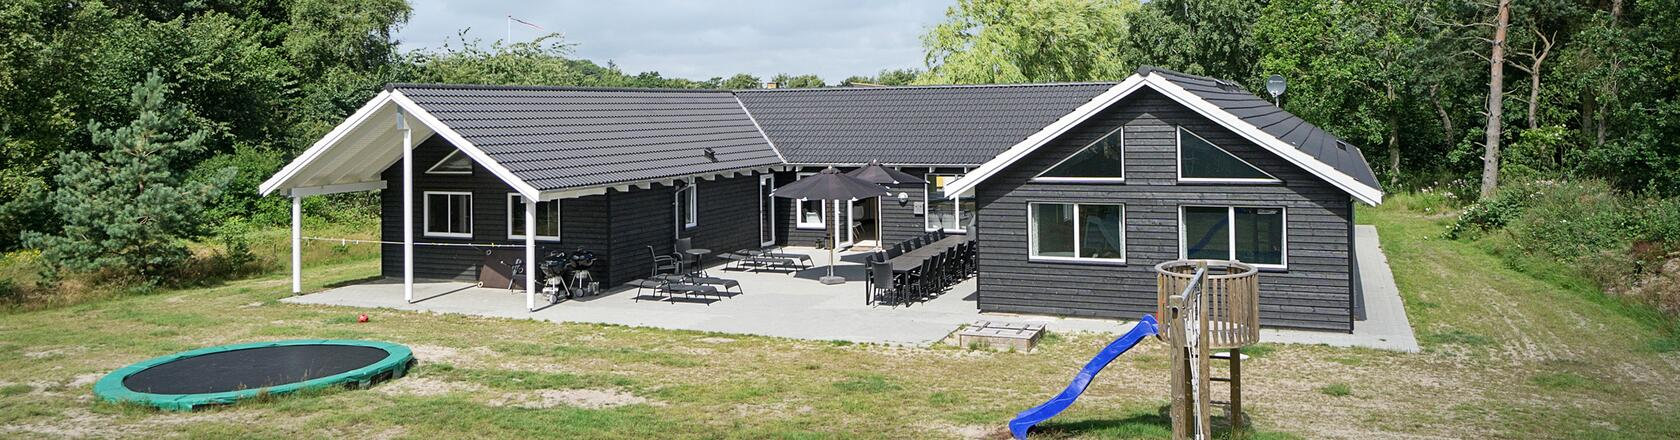 Bølshavn in Denmark - Rent a holiday home  with DanCenter